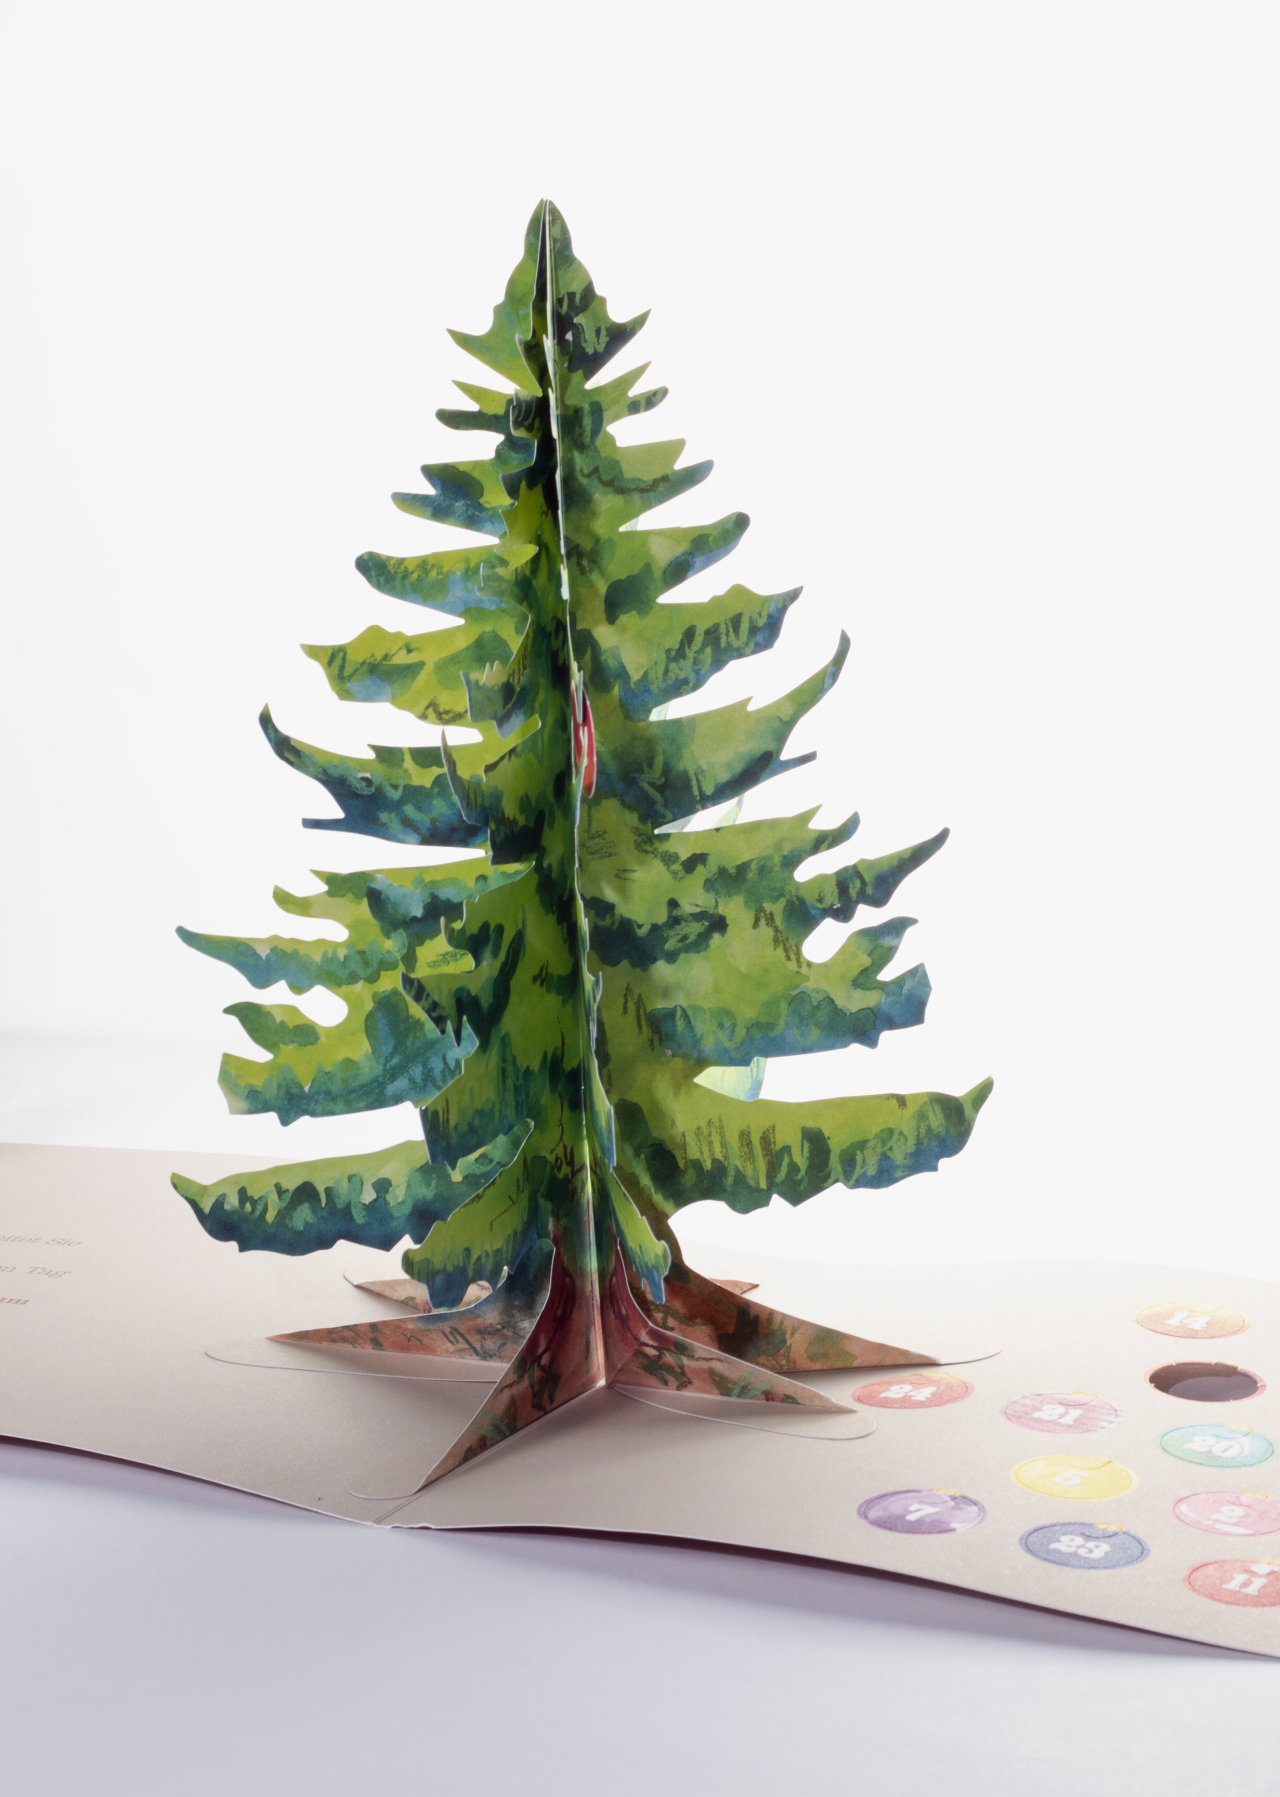 Tanner Druck AG, Pop-up Tannenbaum Adventskalender